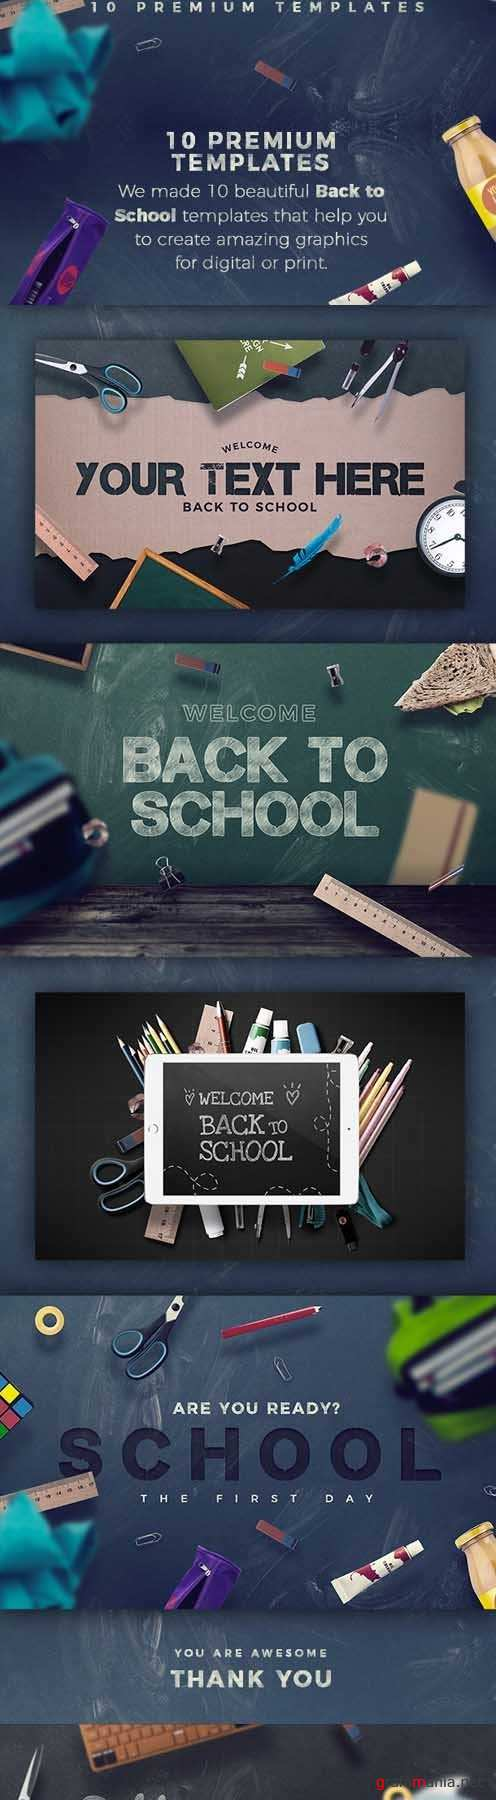 Back To School - 10 Hero Image Templates 19947685